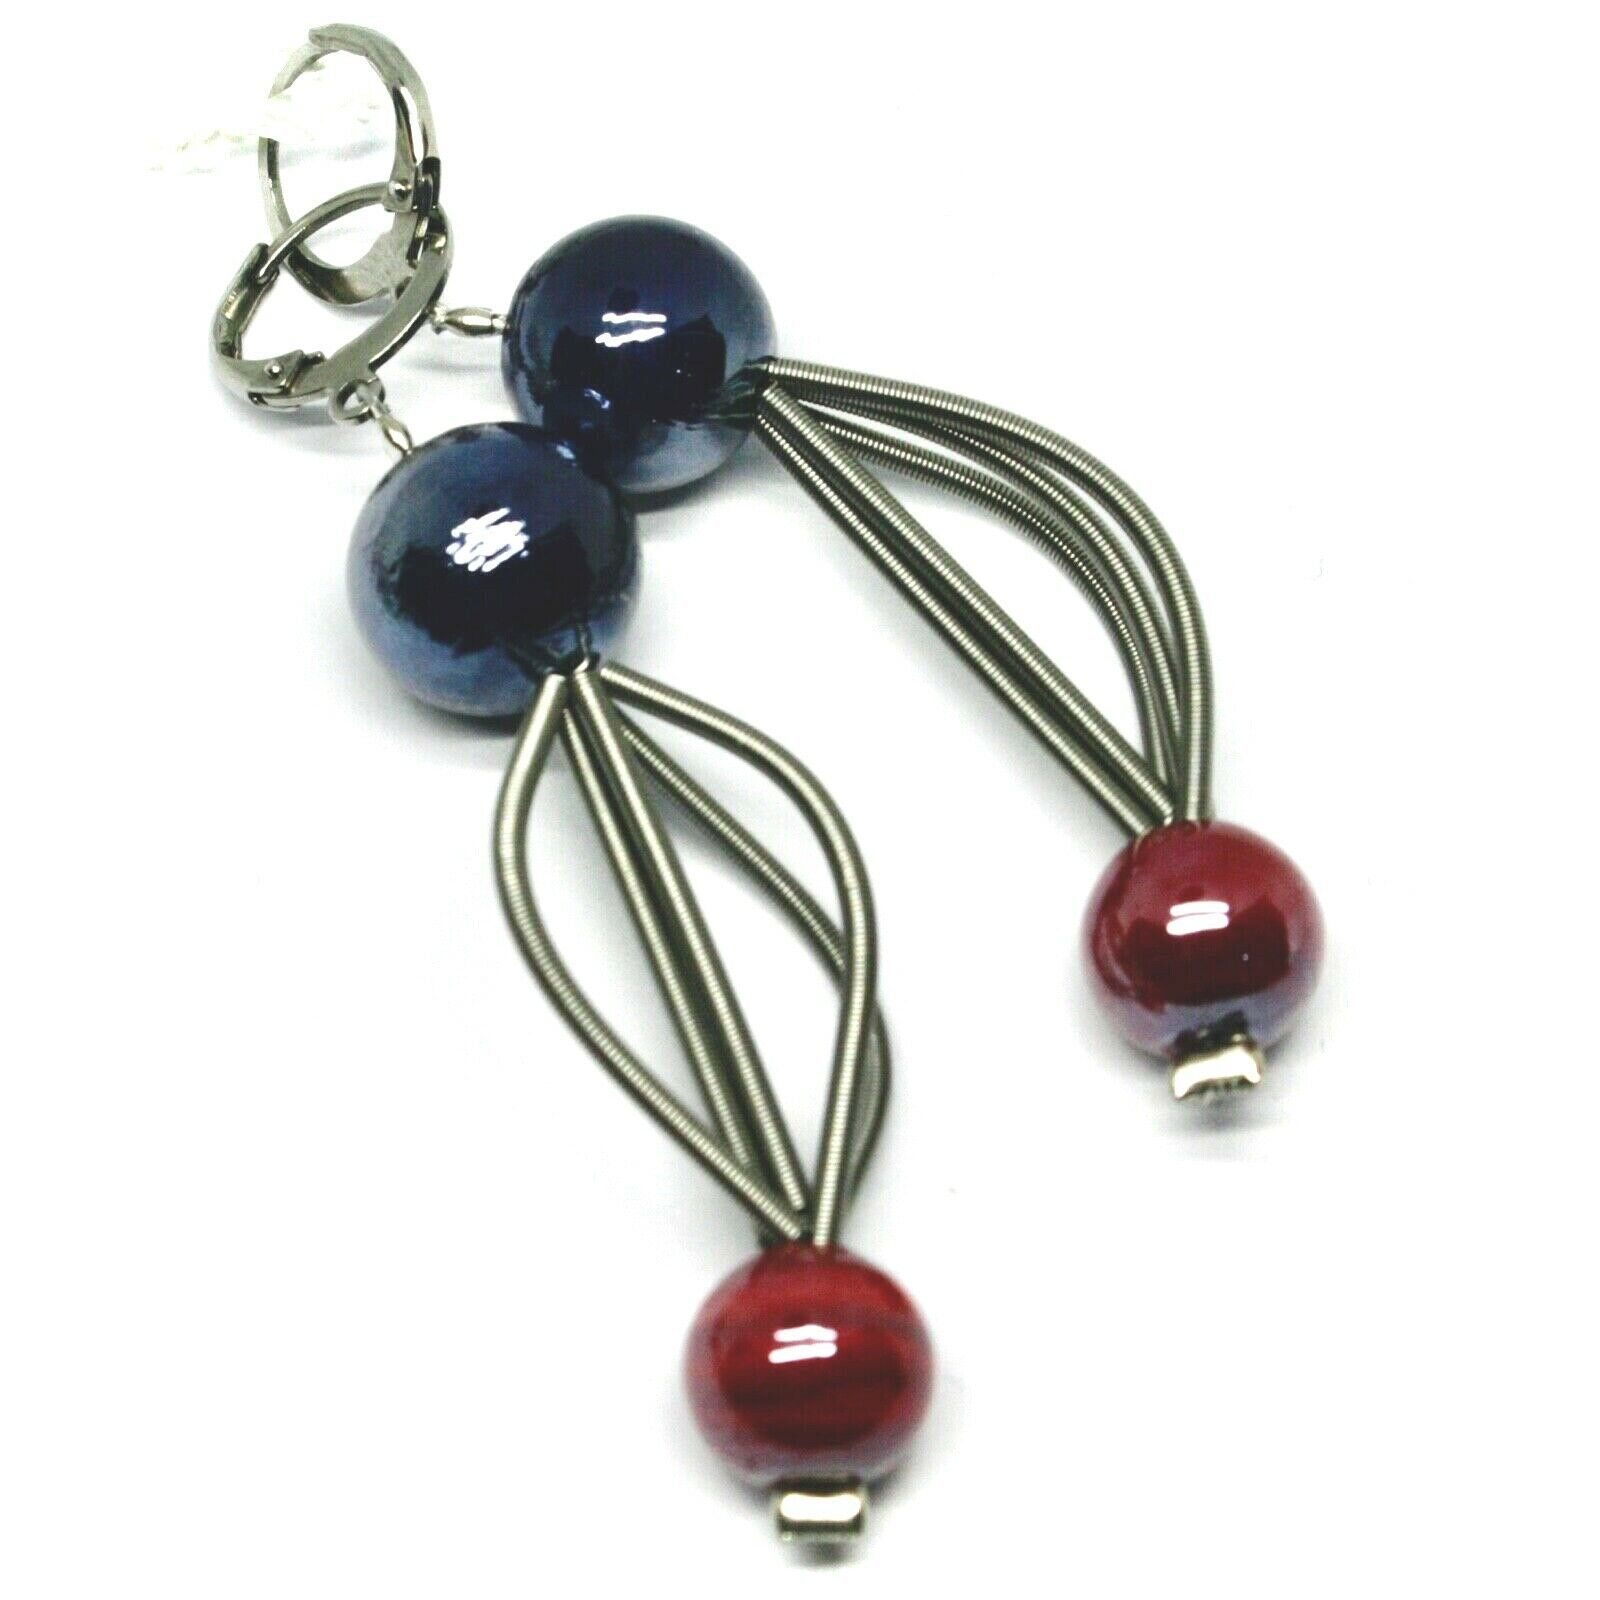 """PENDANT MULTI WIRES EARRINGS BLUE RED SPHERES MURANO GLASS 2.6"""" ITALY MADE"""